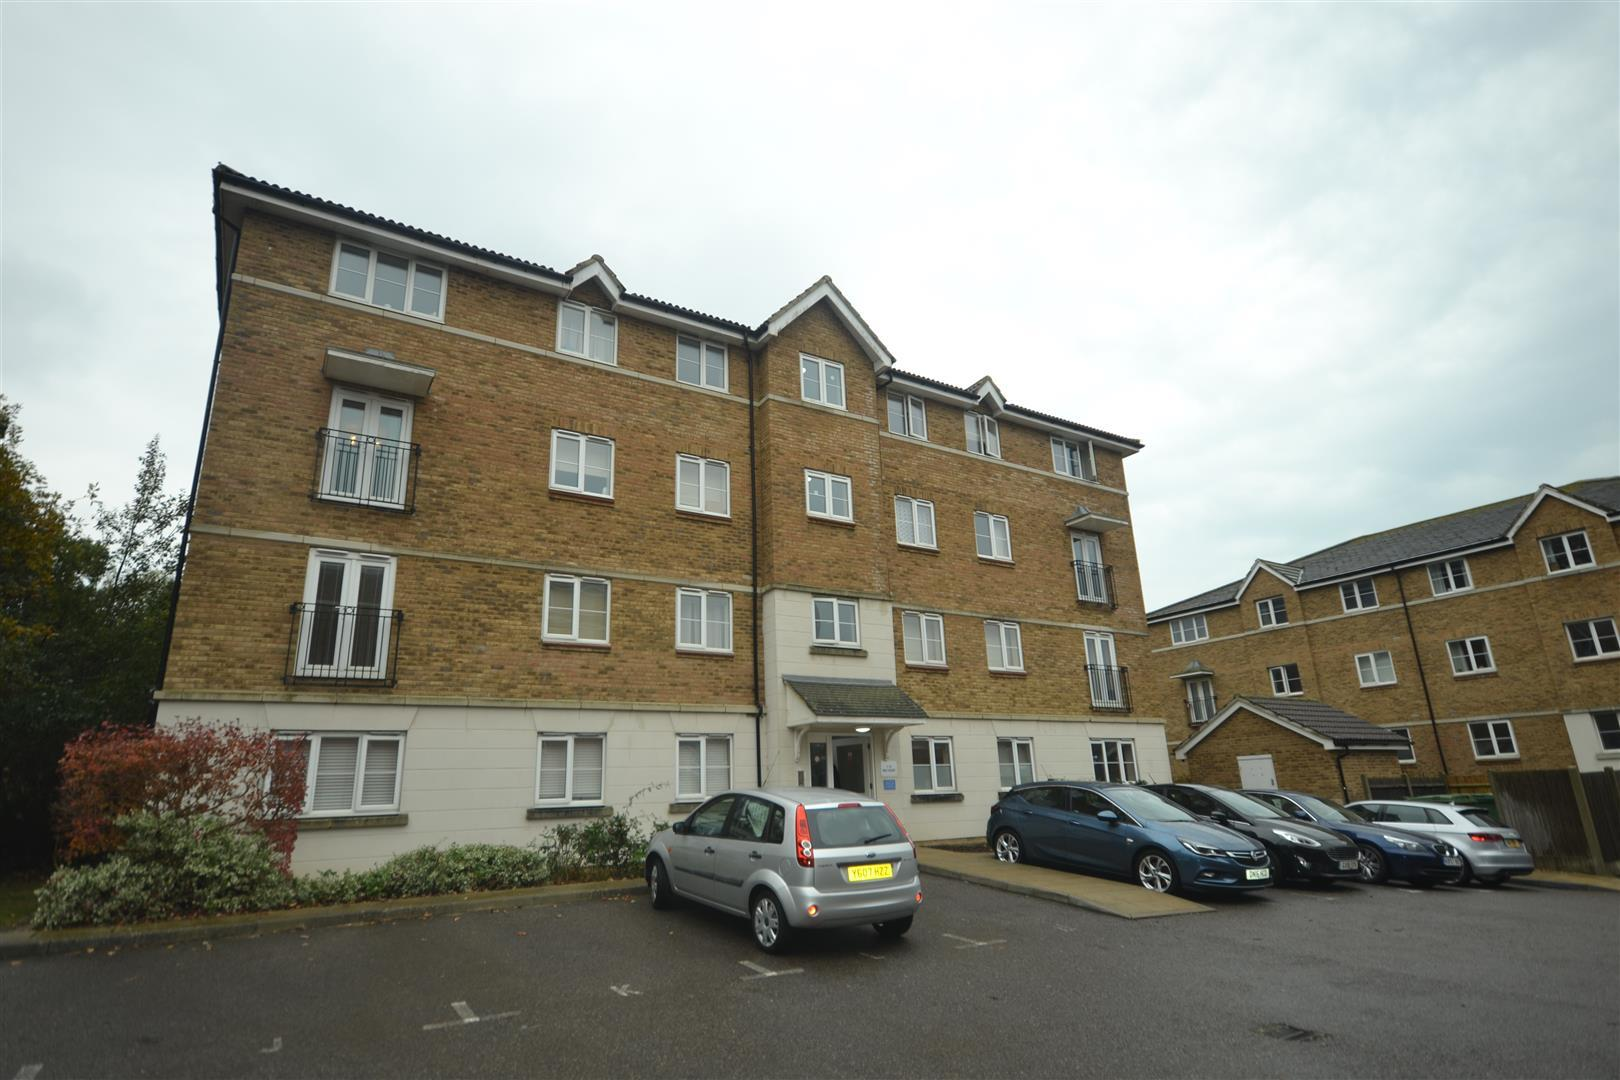 2 bed apartment for sale in Snowdrop Rise, St. Leonards-On-Sea  - Property Image 1